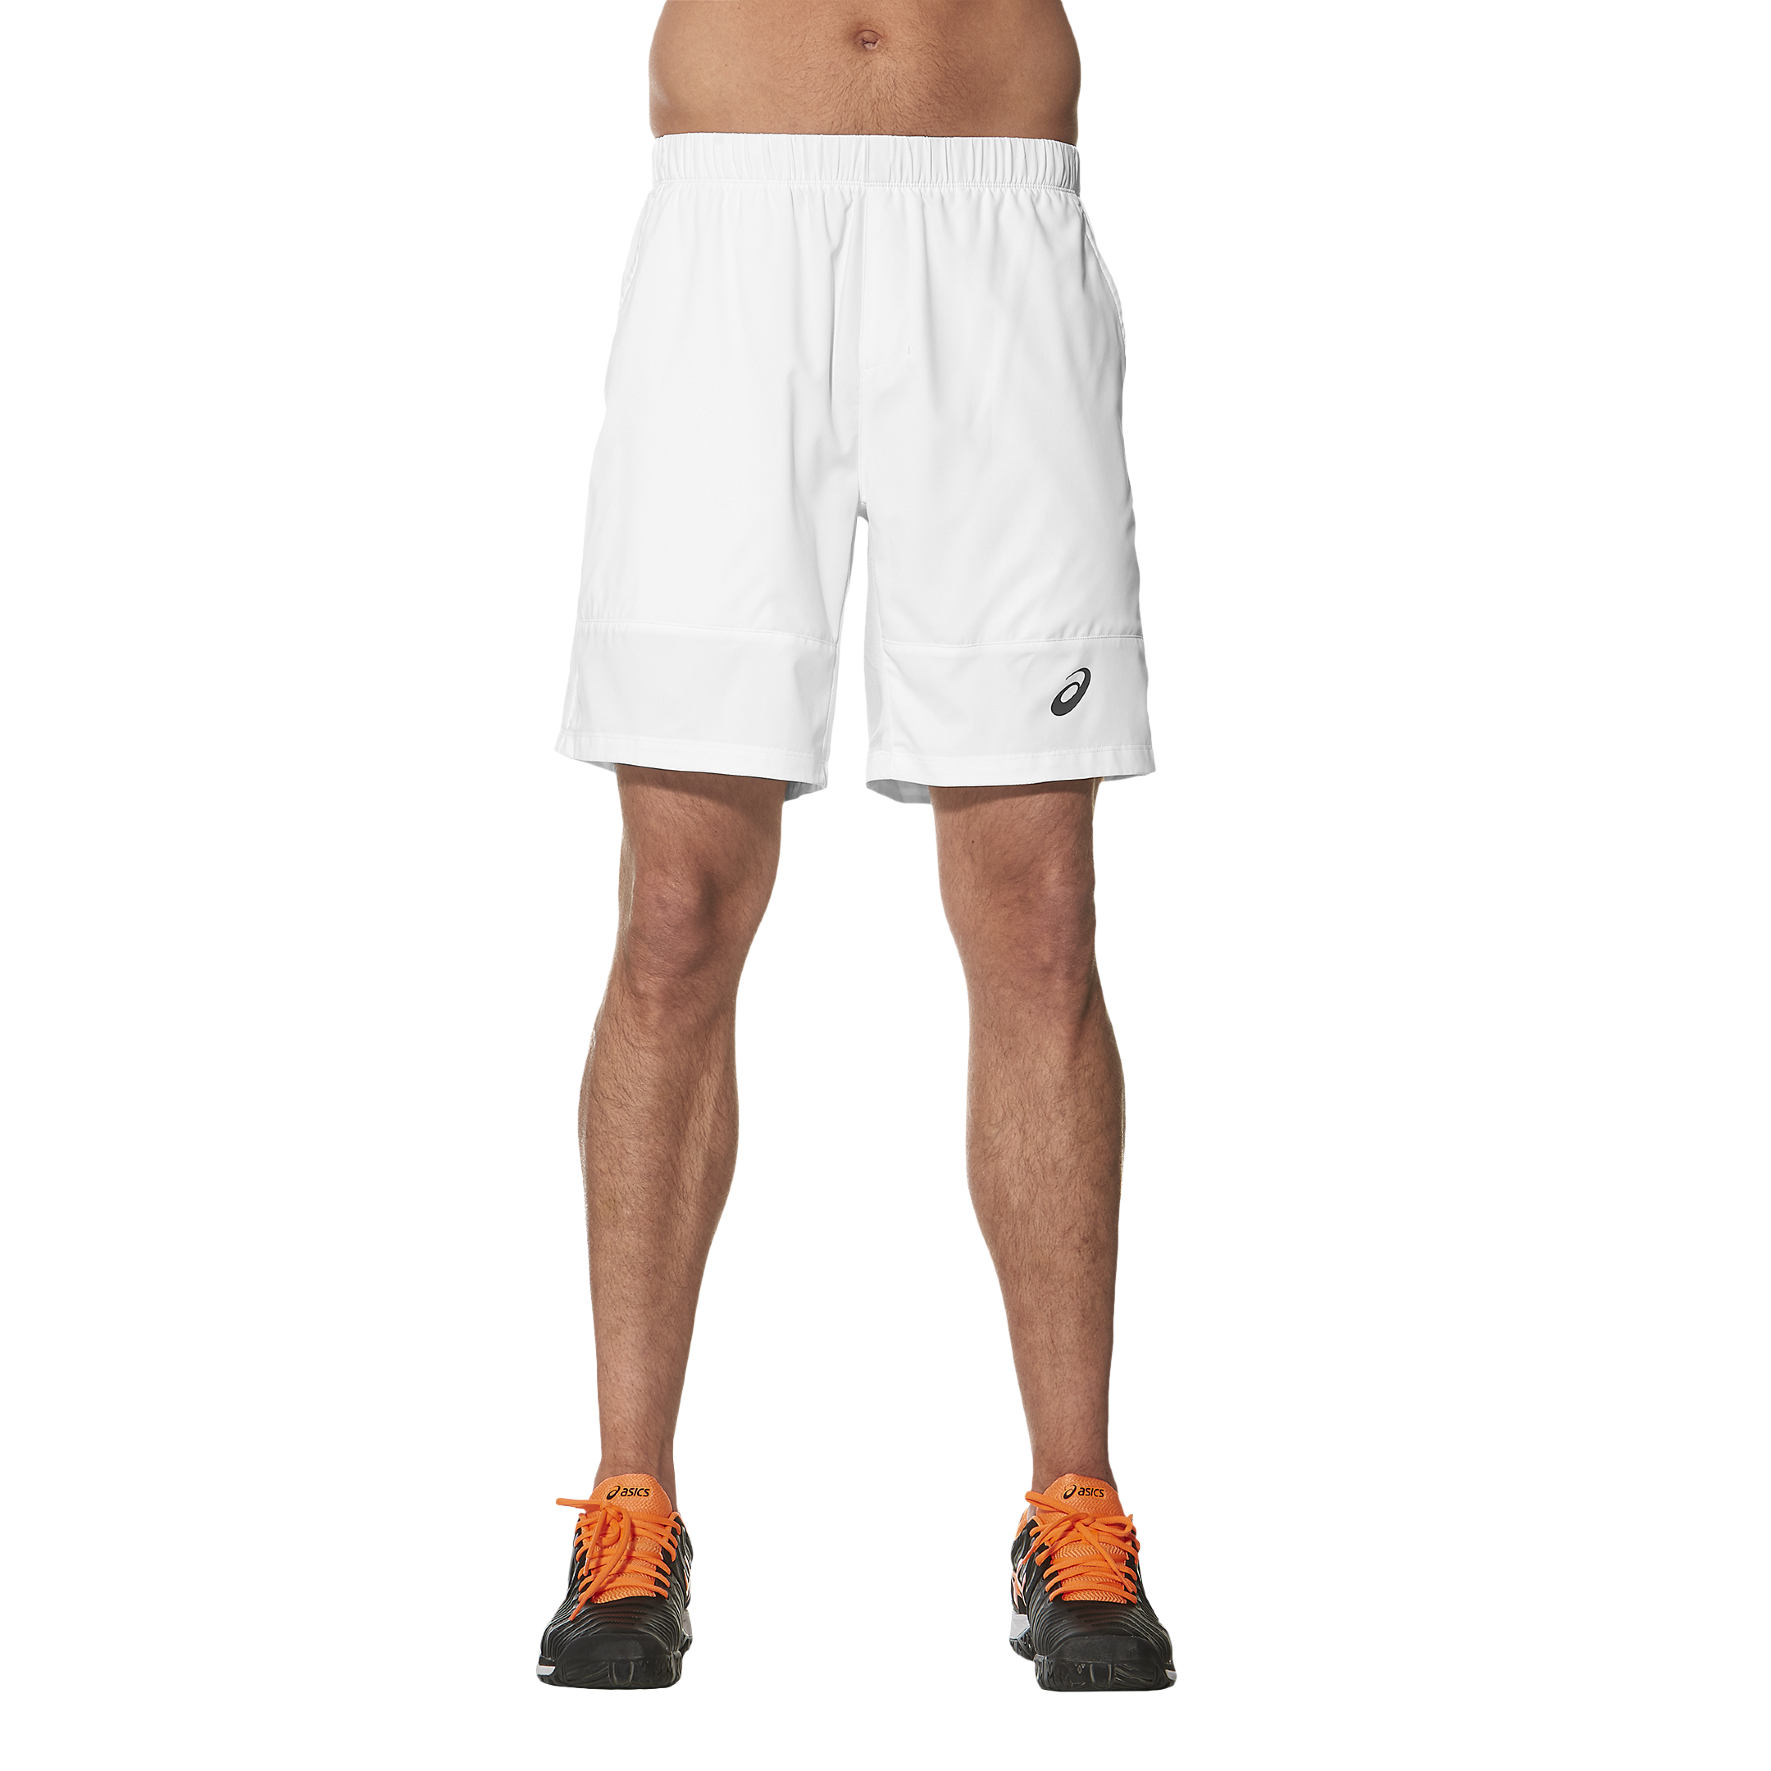 Asics Club 7 Inches Mens Tennis Shorts  White XXL